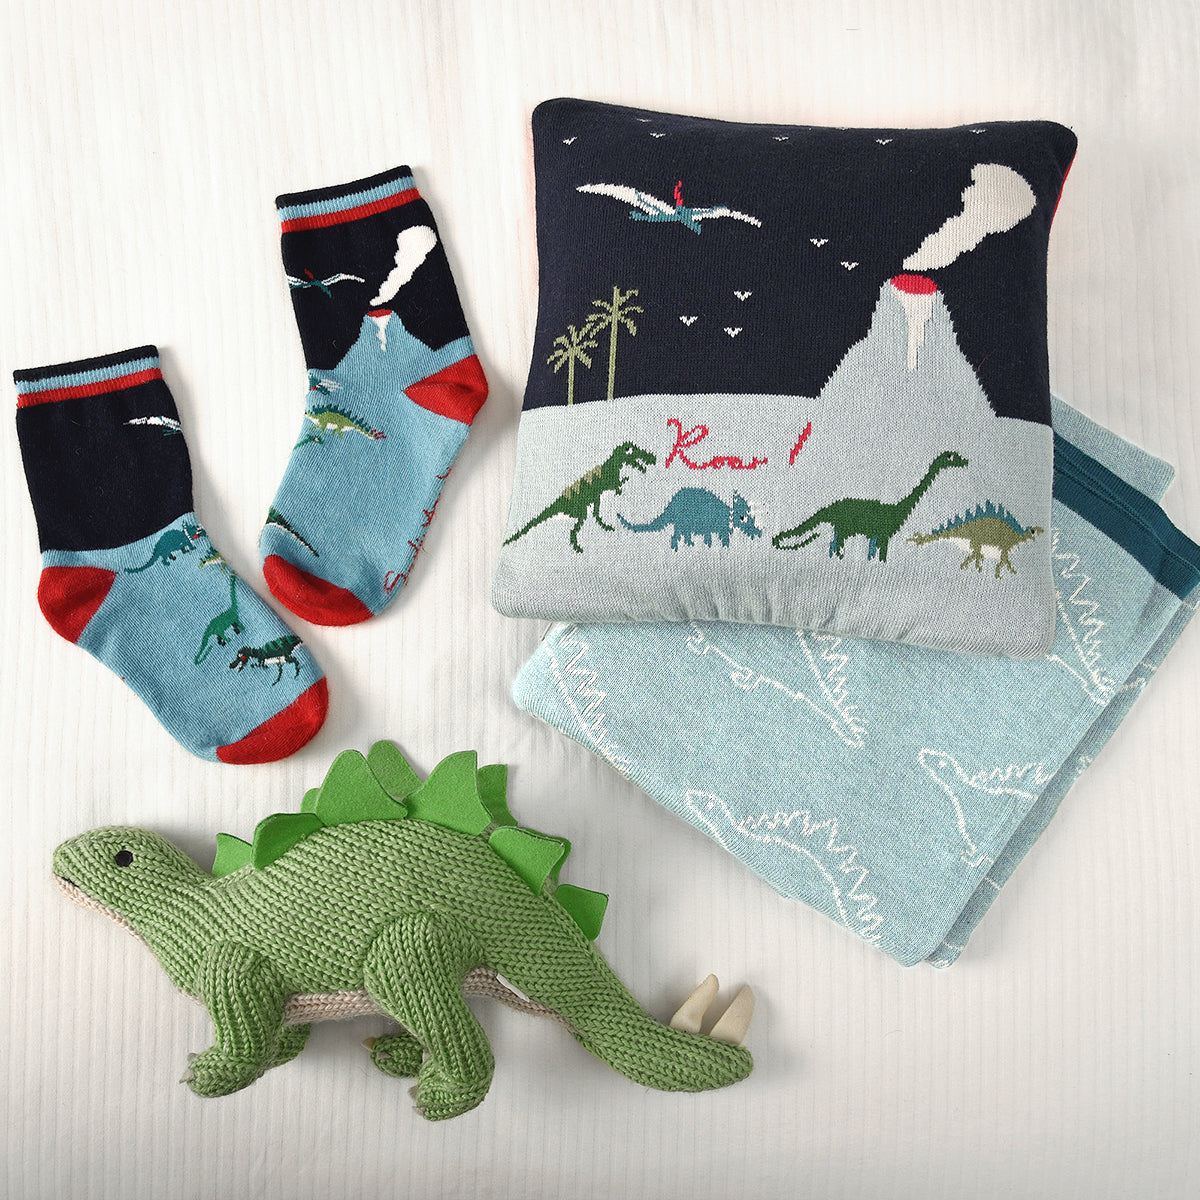 Dinosaurs Kids Socks by Sophie Allport